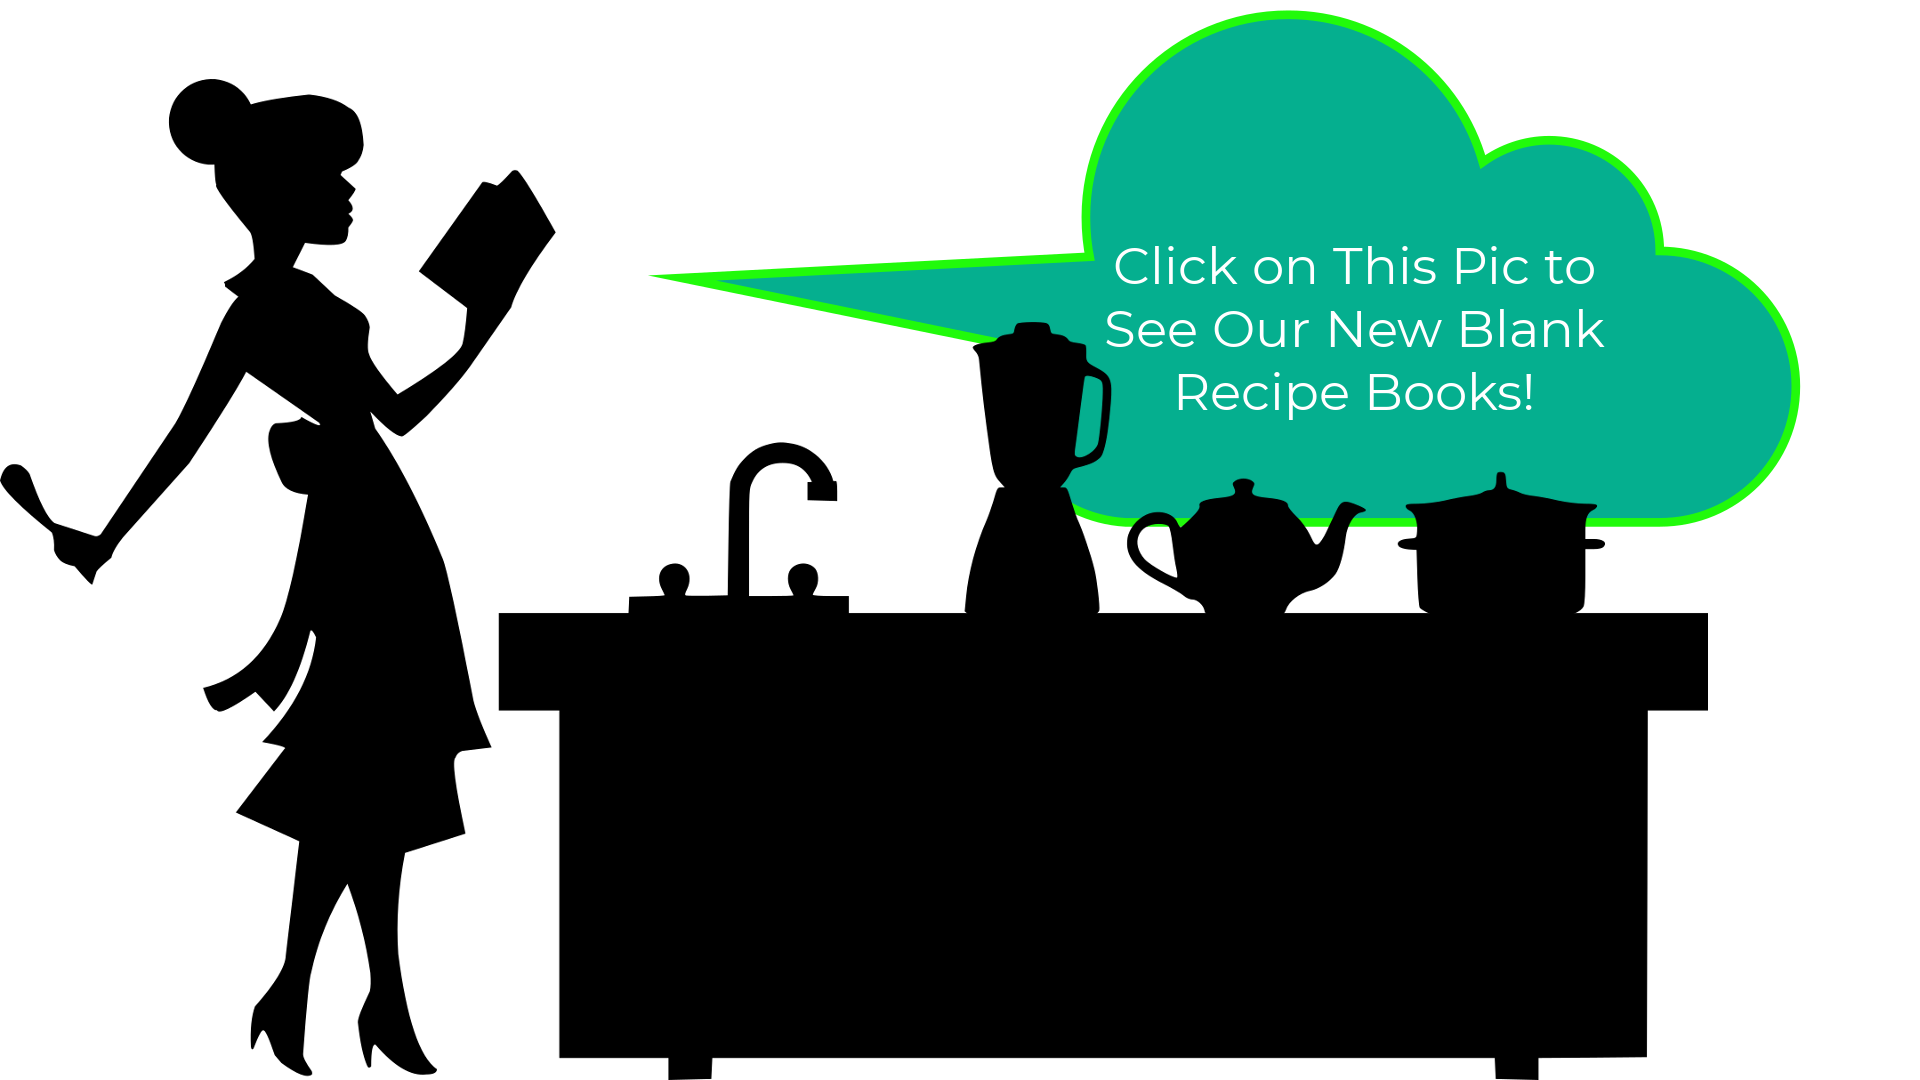 Pic linked to recipe book page